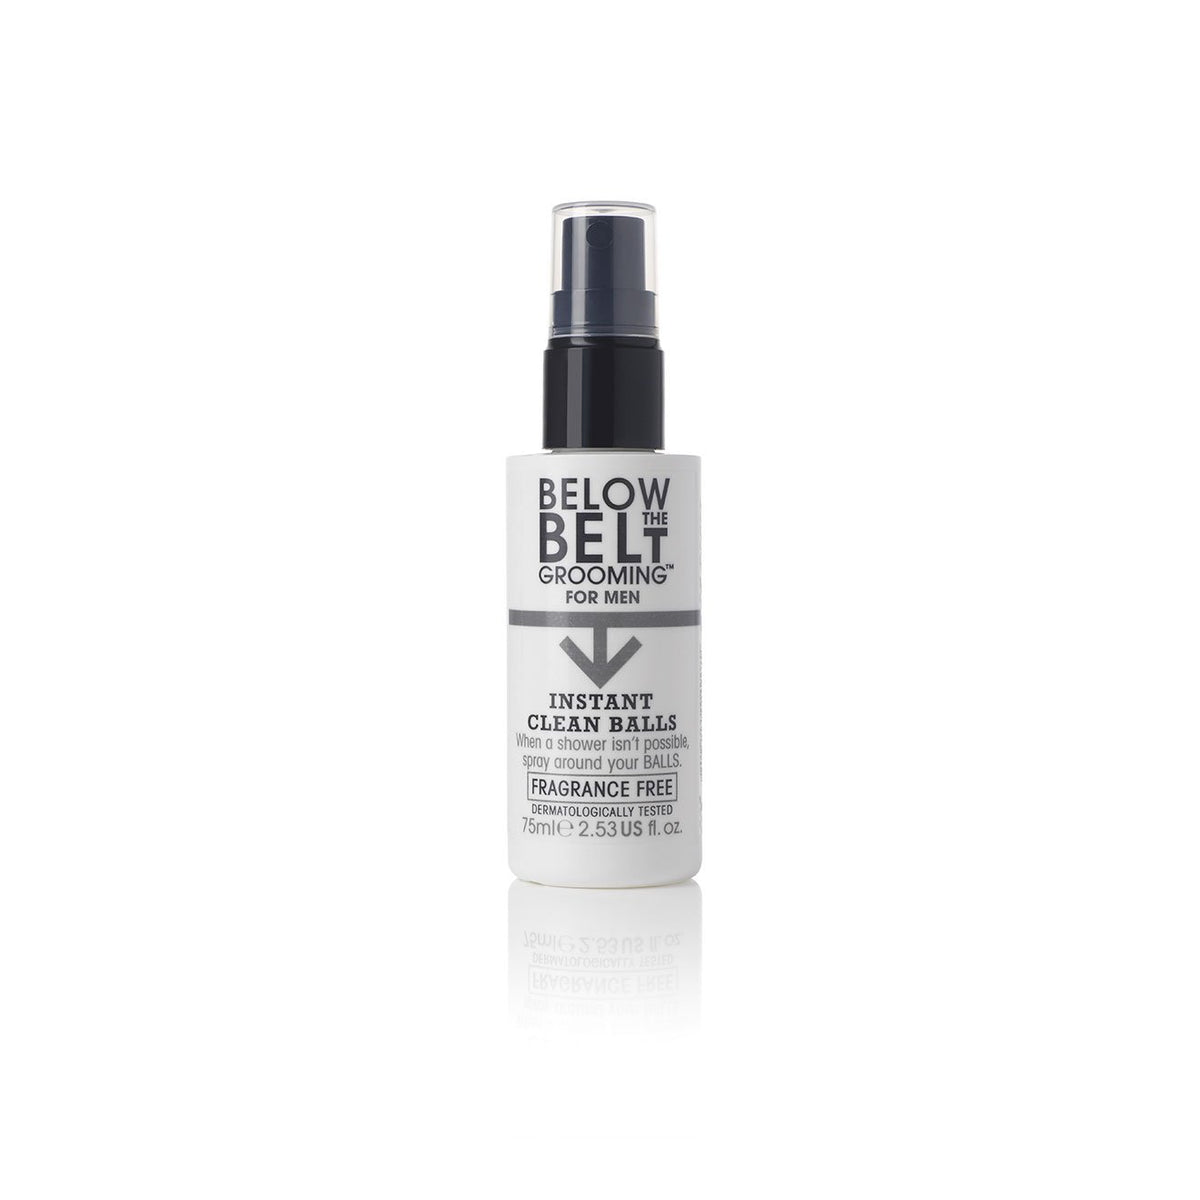 Below The Belt Instant Clean Balls Fragrance Free